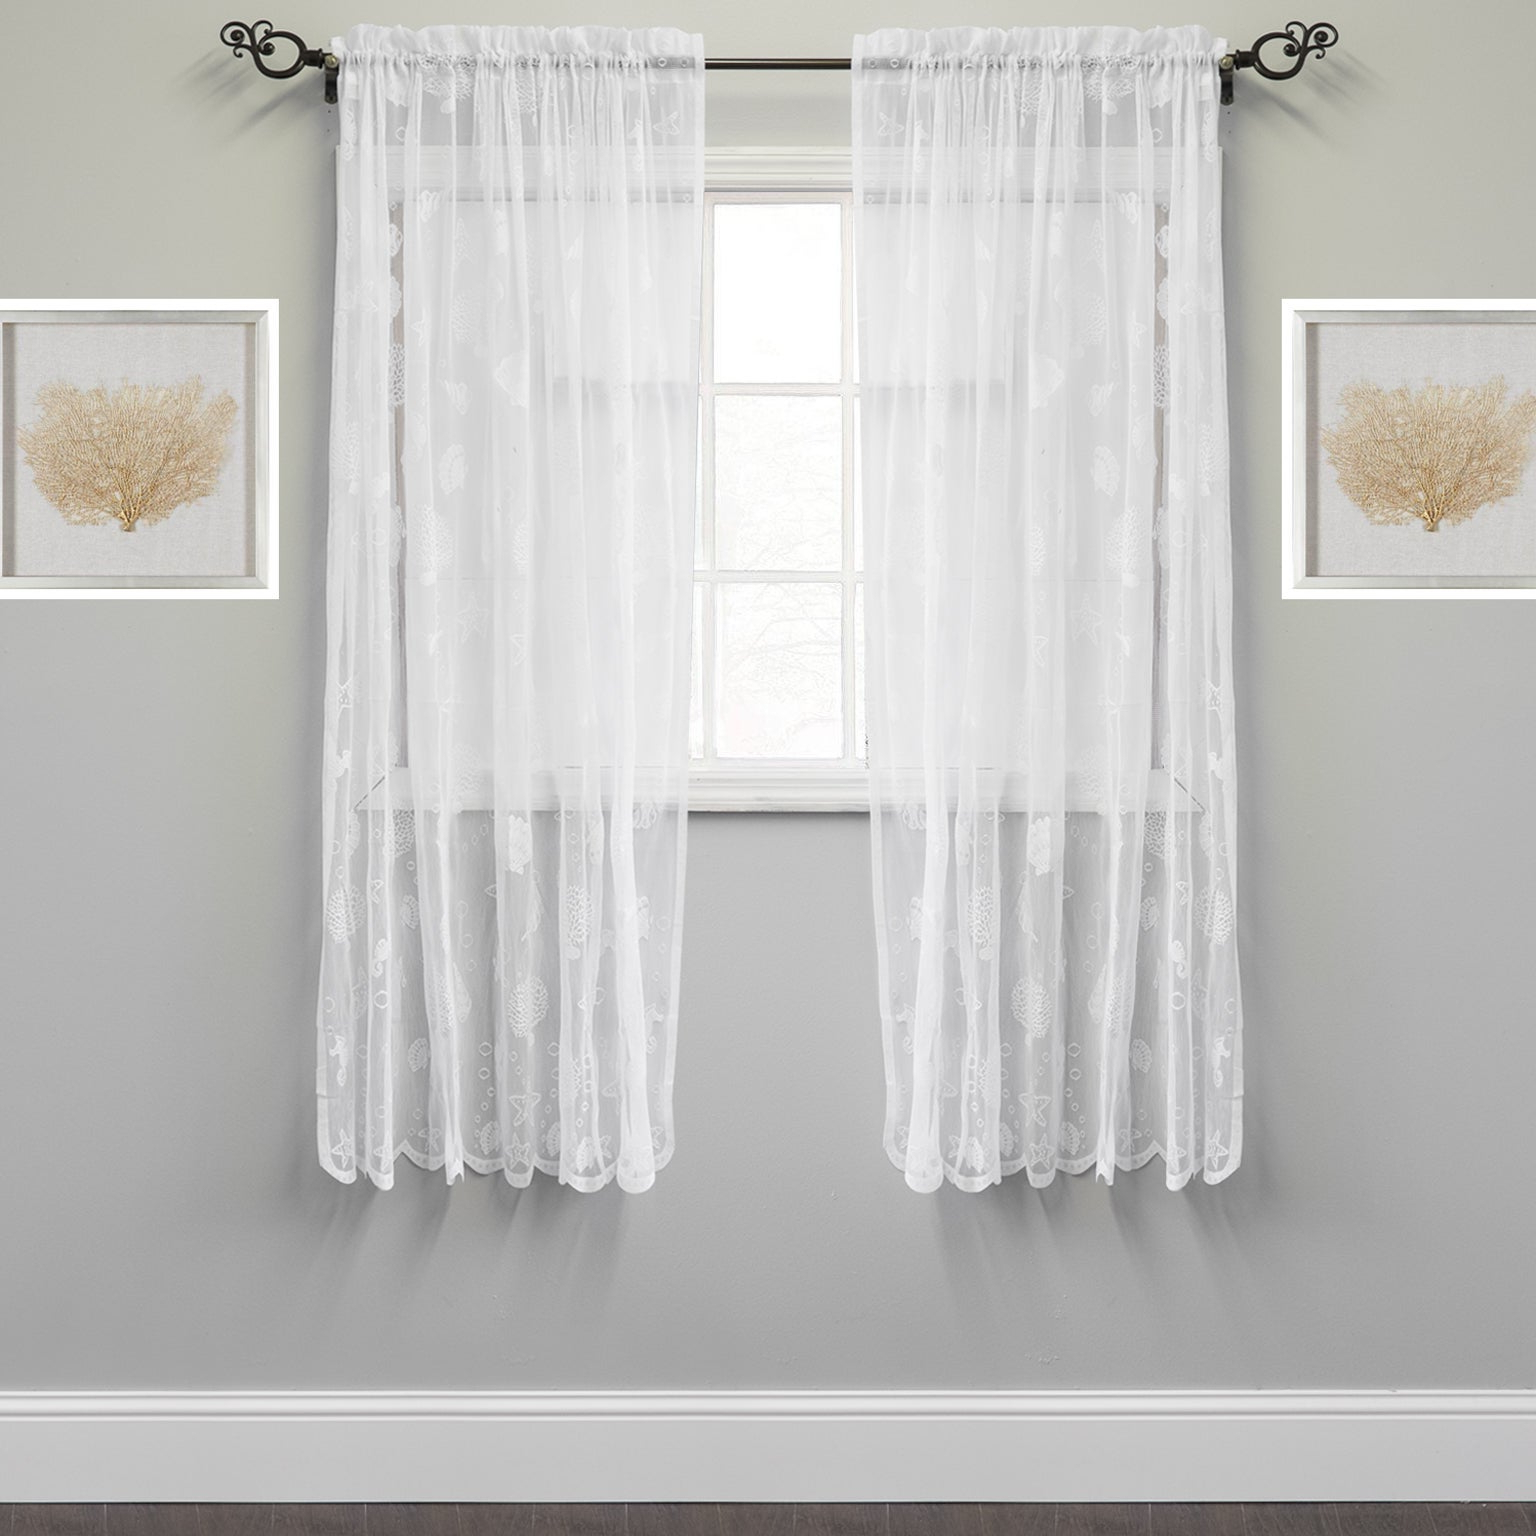 Ivory Knit Lace Bird Motif Window Curtain In Favorite Marine Life Motif Knitted Lace Window Curtain Panel (View 8 of 20)